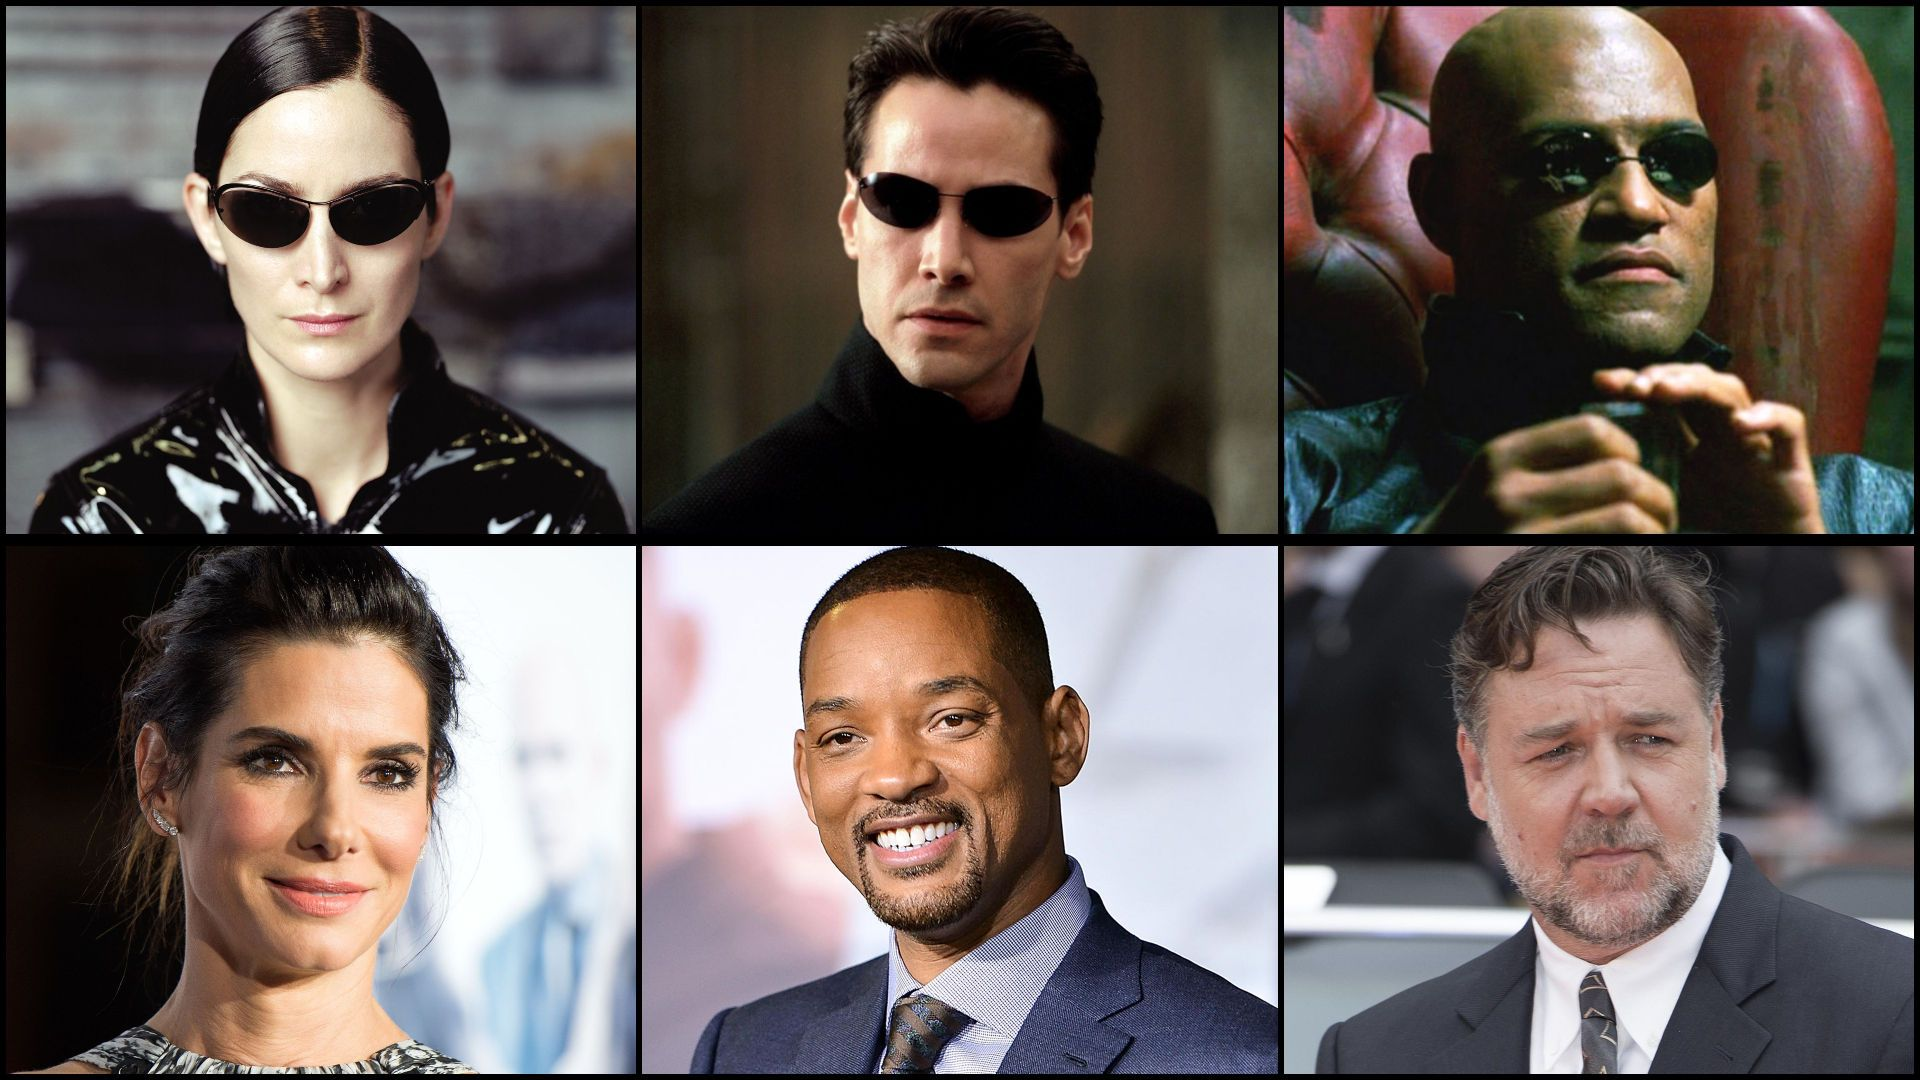 The Matrix Cast: Actors Who Almost Played The Main Characters